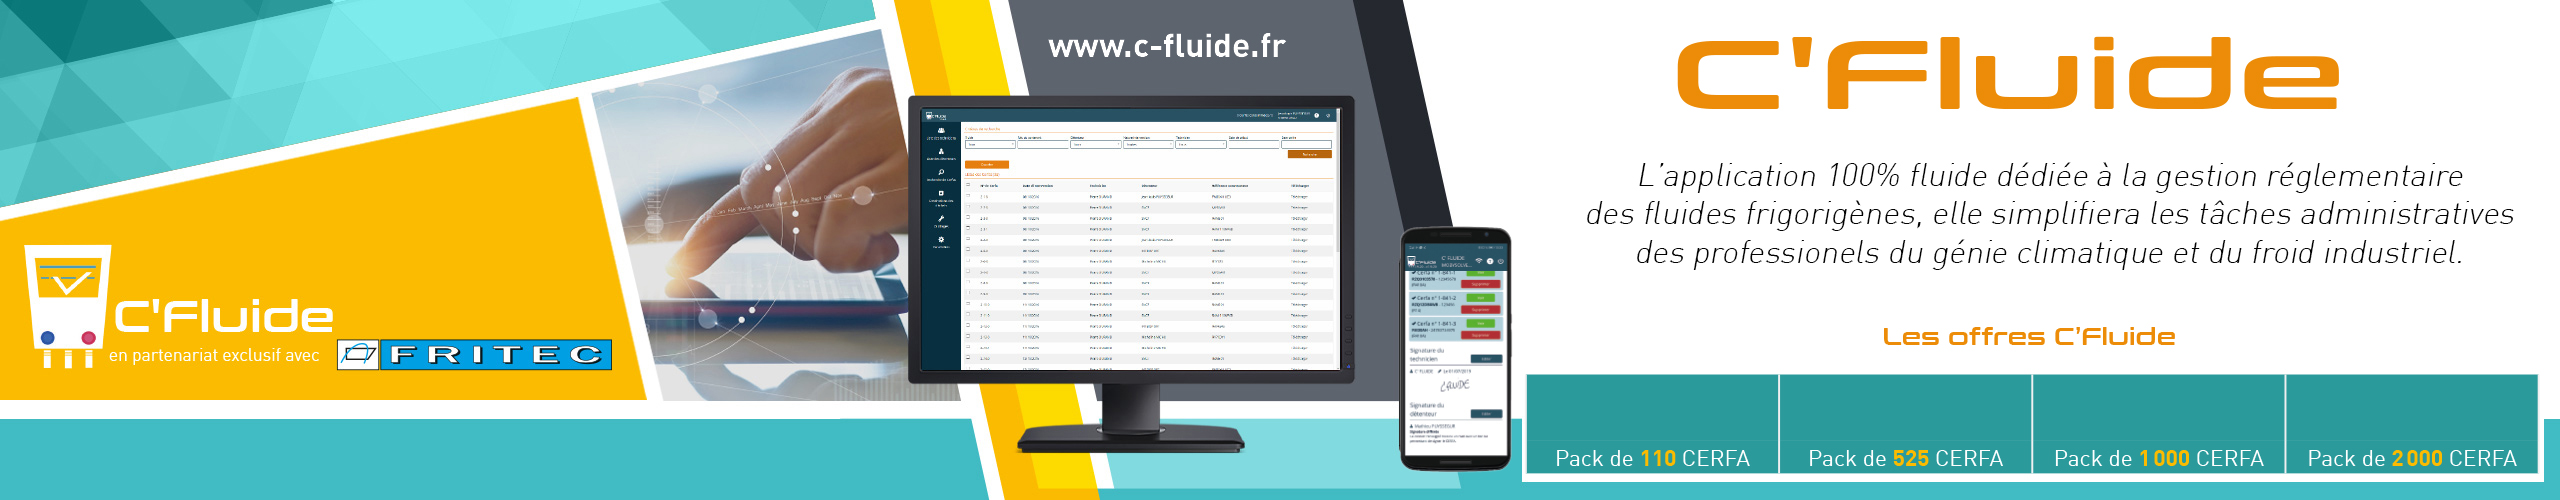 Application C'fluide